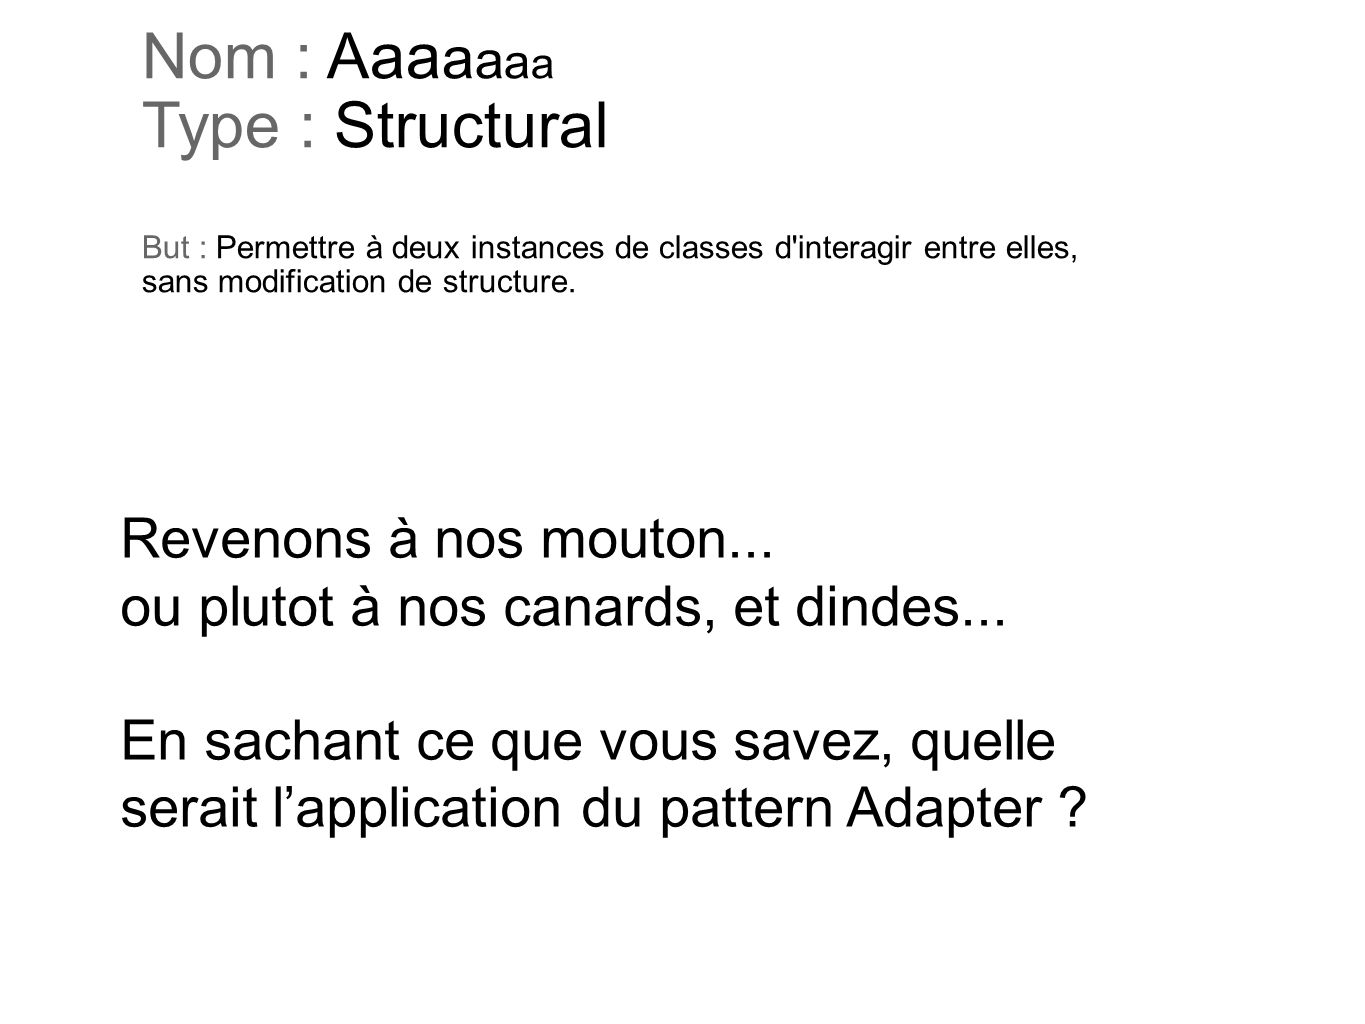 Nom : Aaaaaaa Type : Structural But : Permettre à deux instances de classes d interagir entre elles, sans modification de structure.